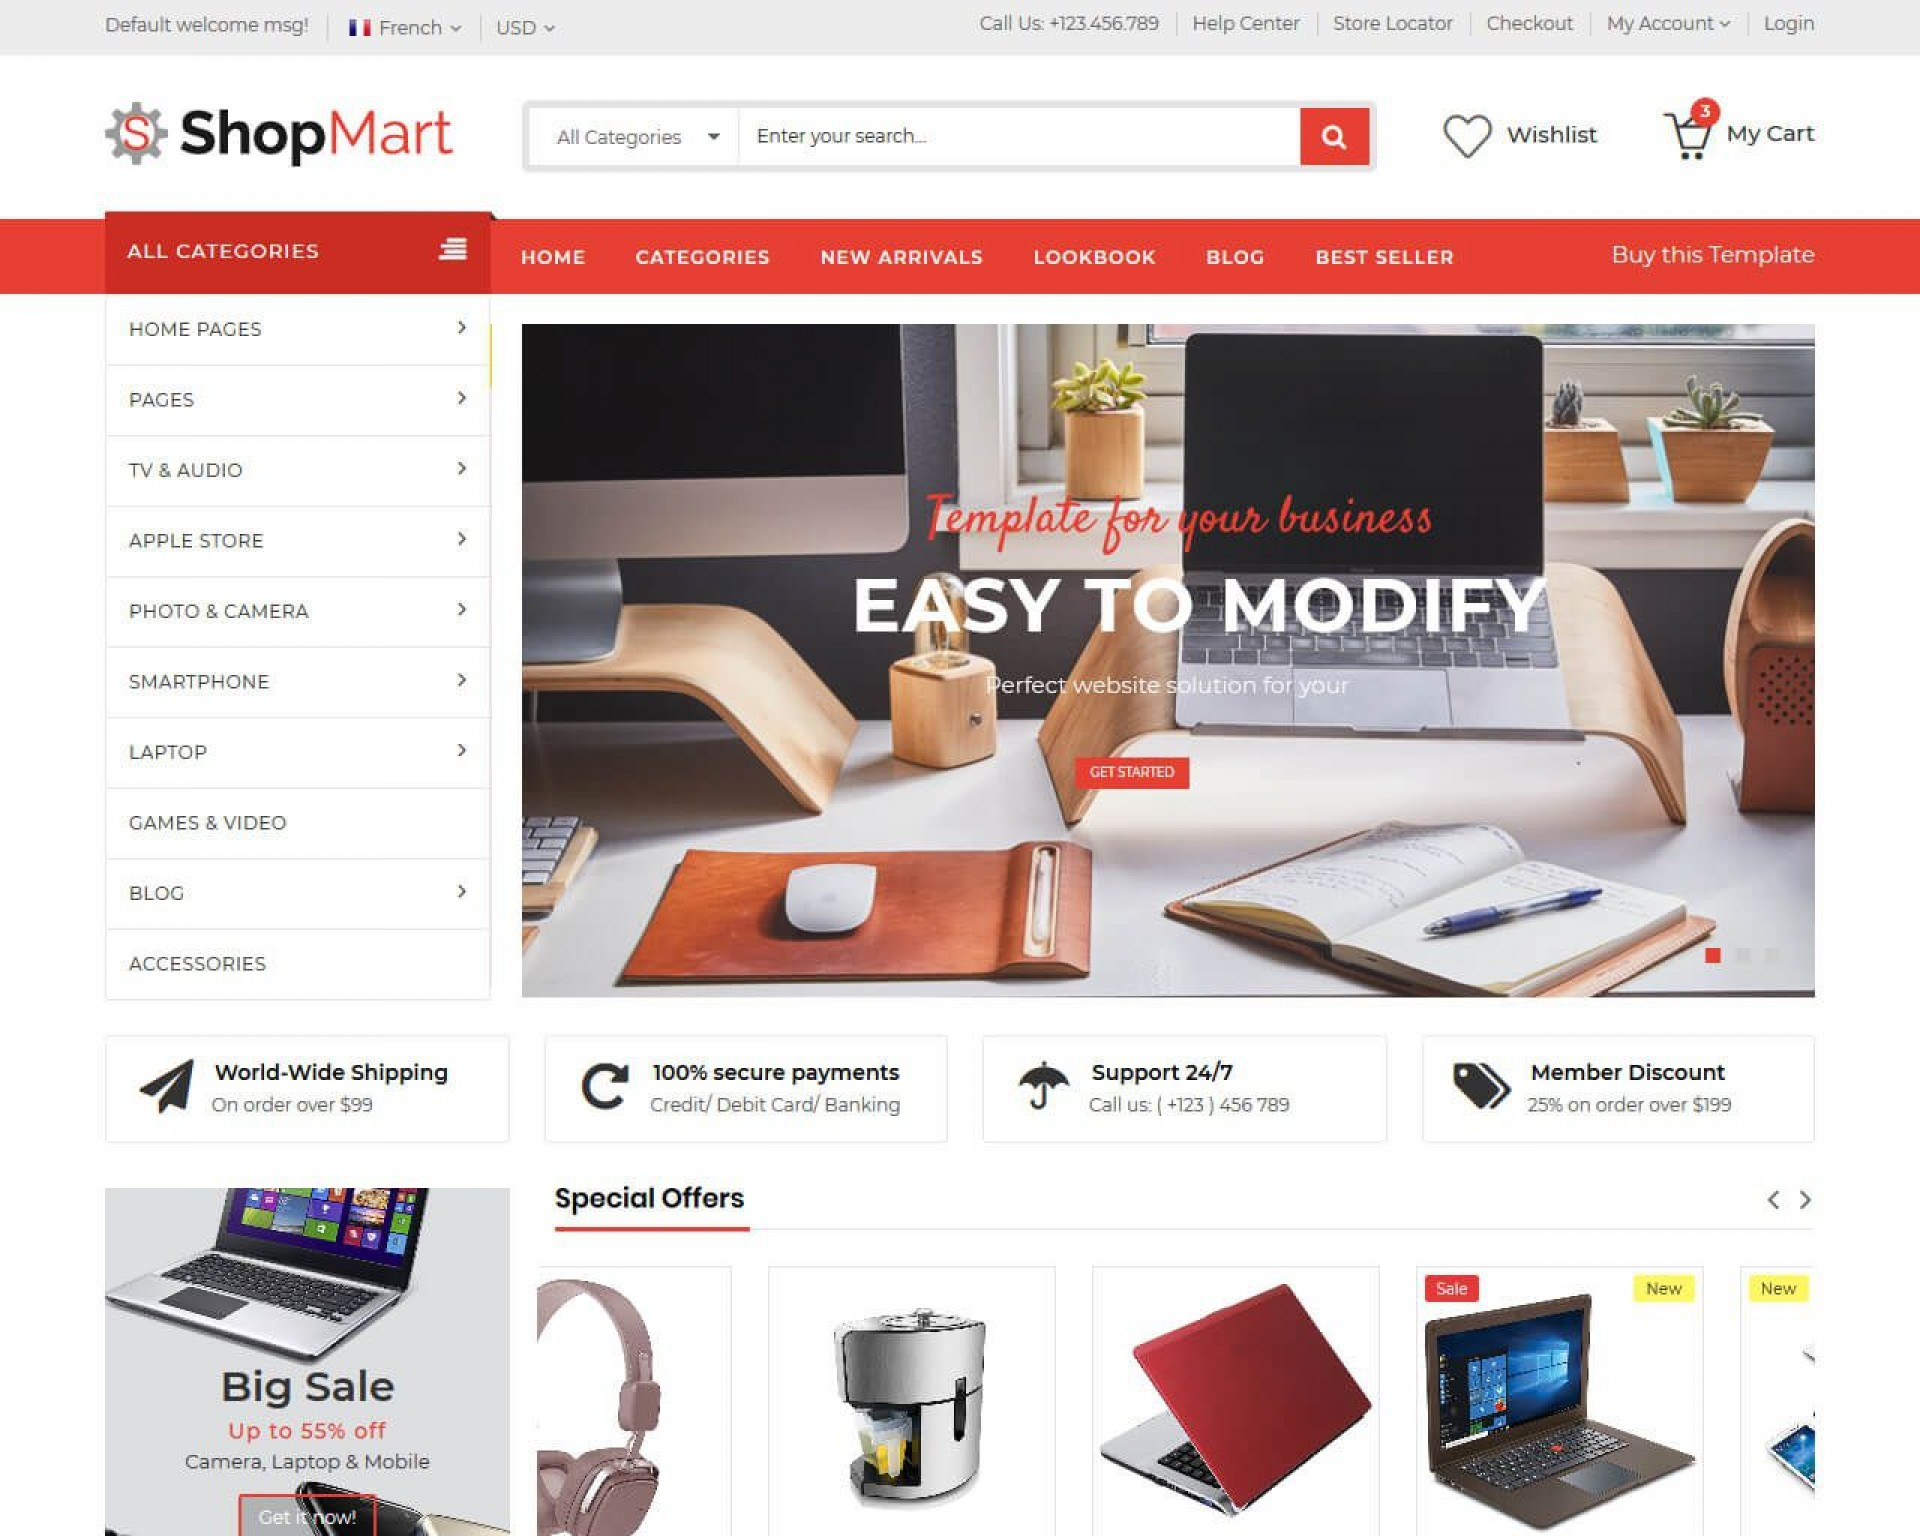 007 Amazing Free Ecommerce Website Template Example  With Shopping Cart Admin Panel Bootstrap1920